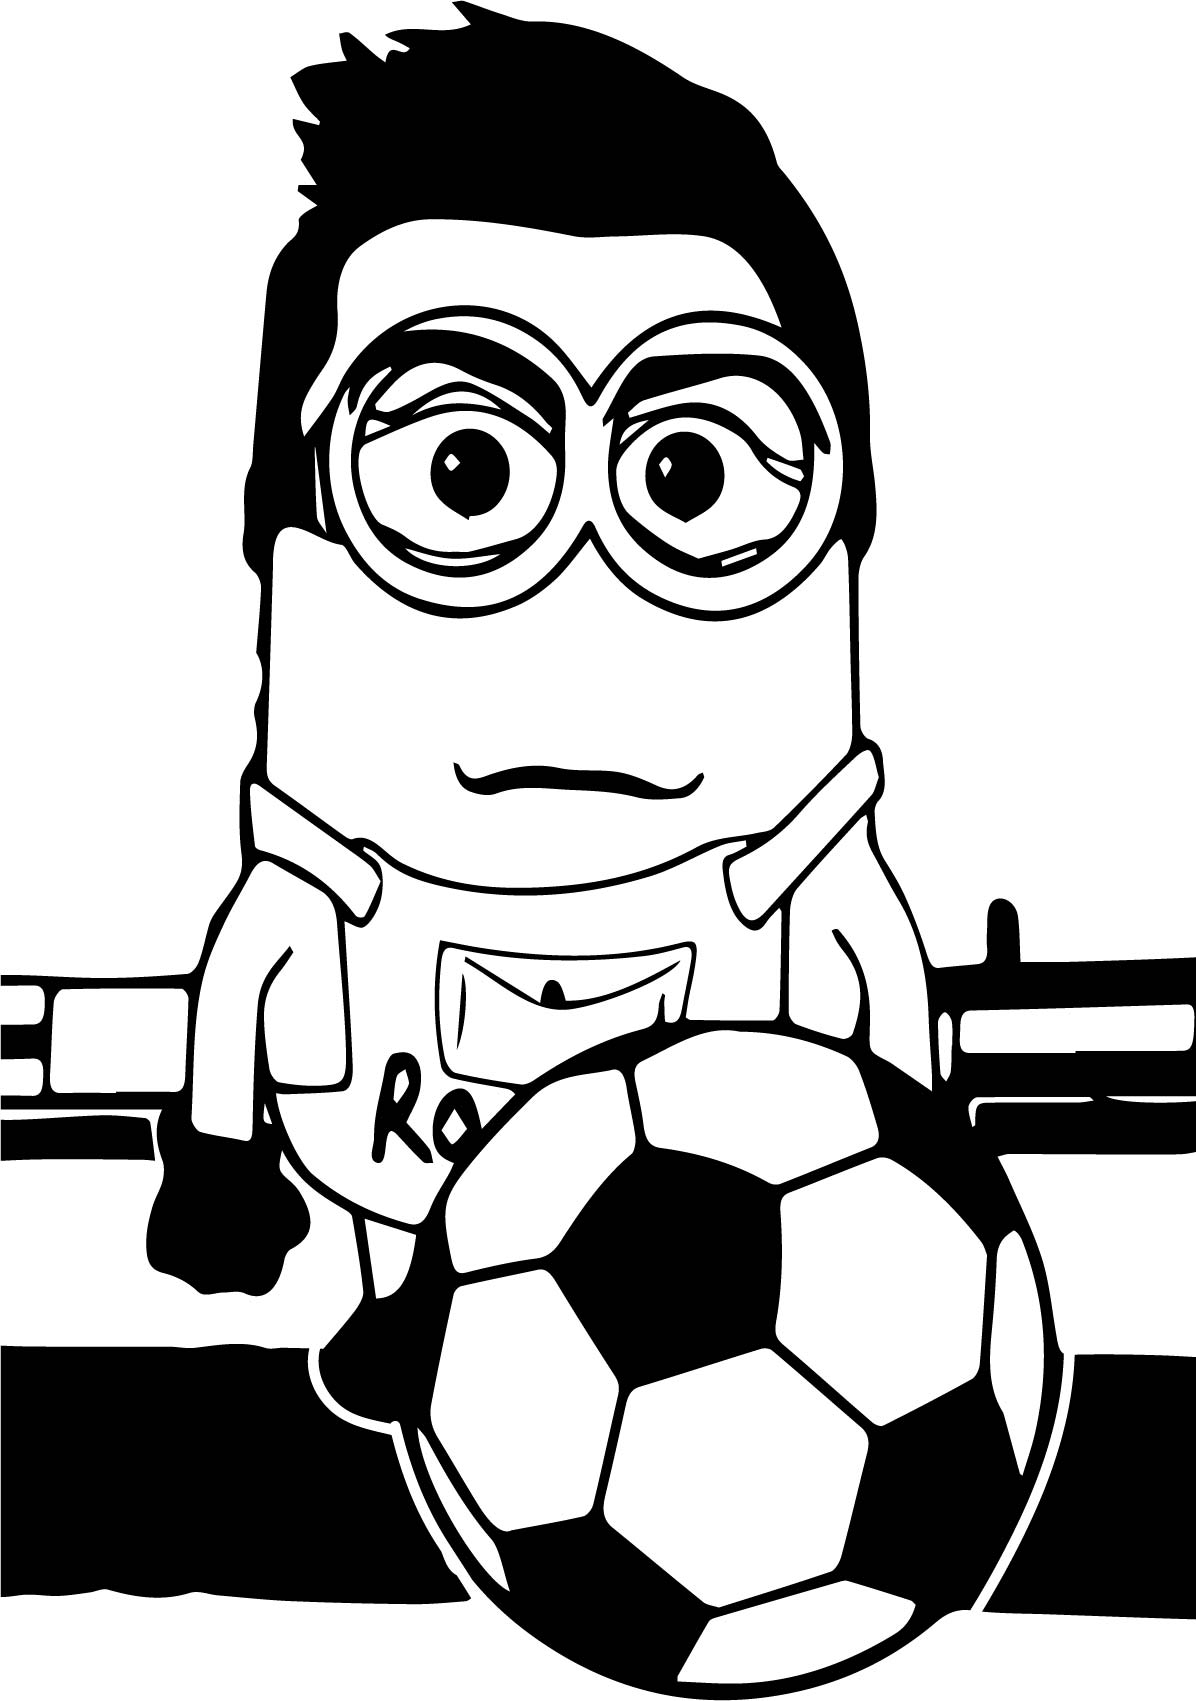 Cristiano Ronaldo Coloring Pages at GetColorings.com